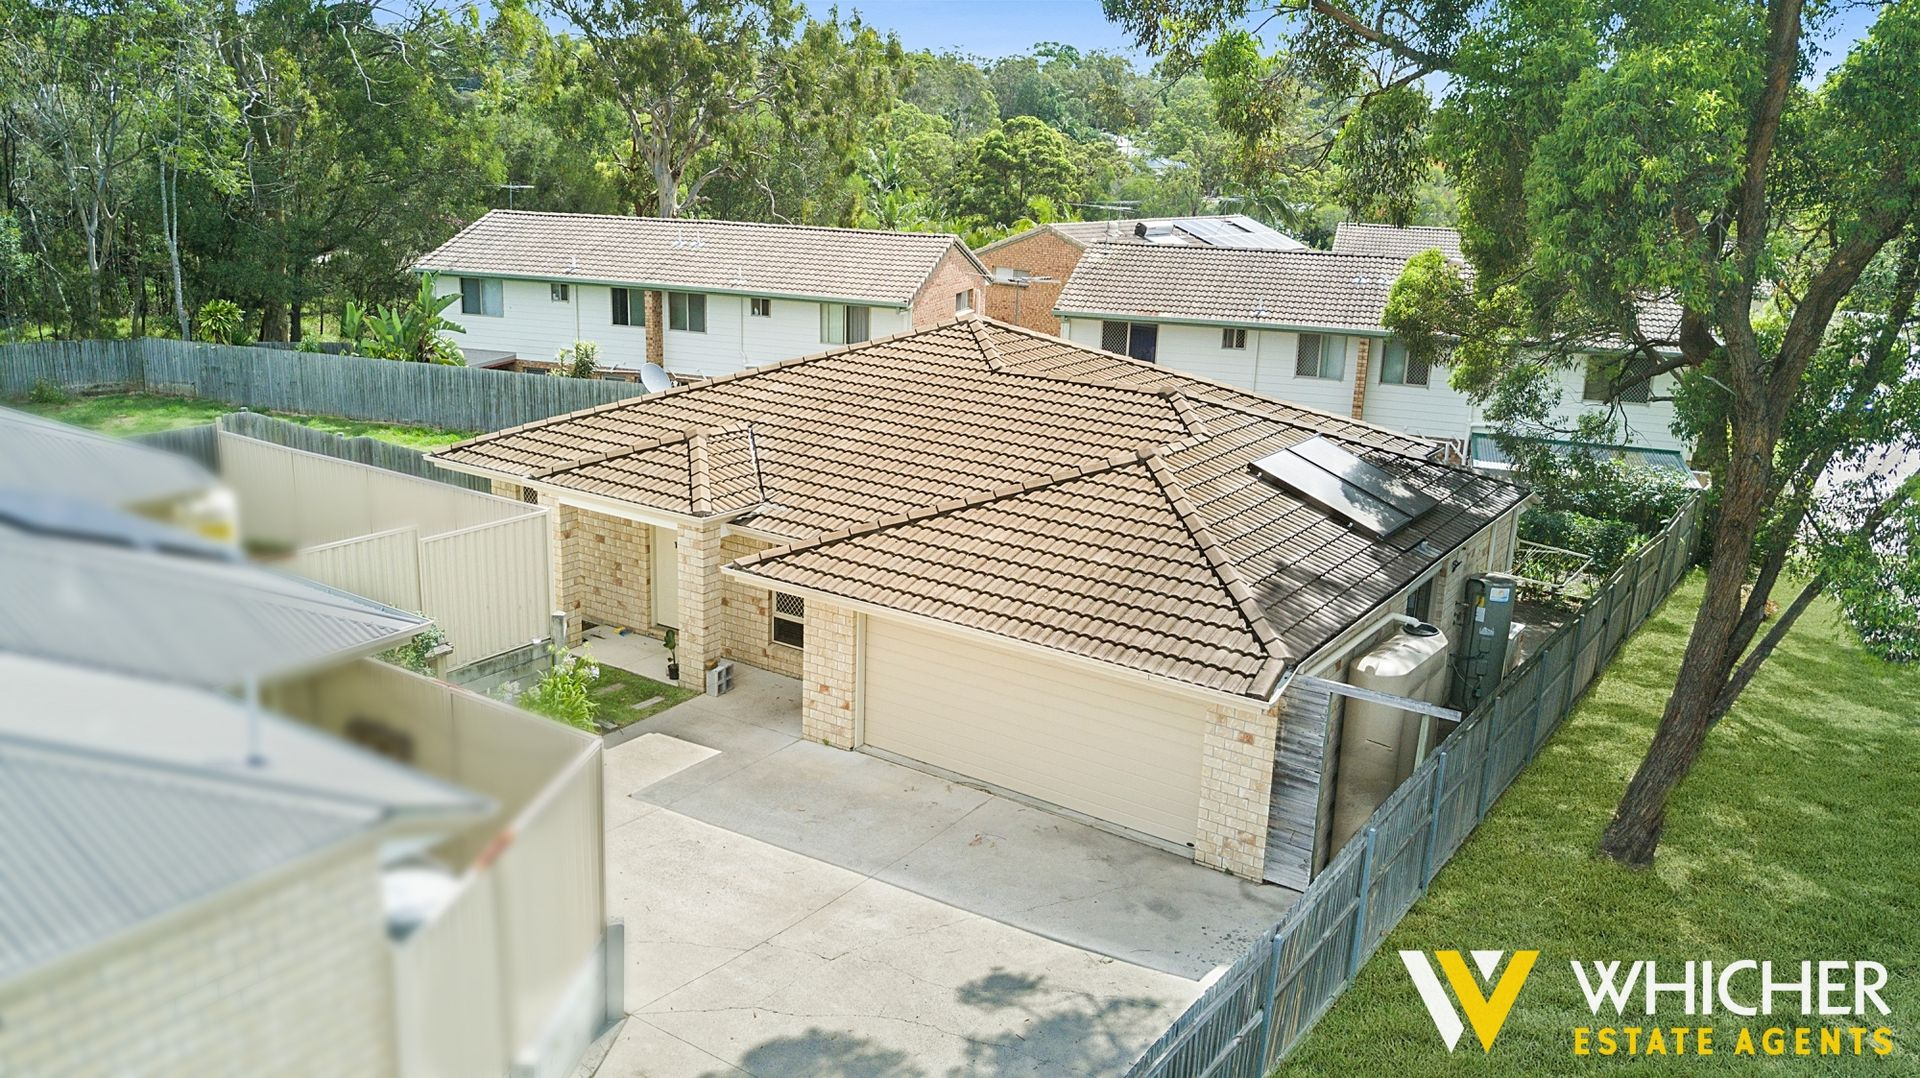 1/139 MOUNT COTTON ROAD, Capalaba QLD 4157, Image 0